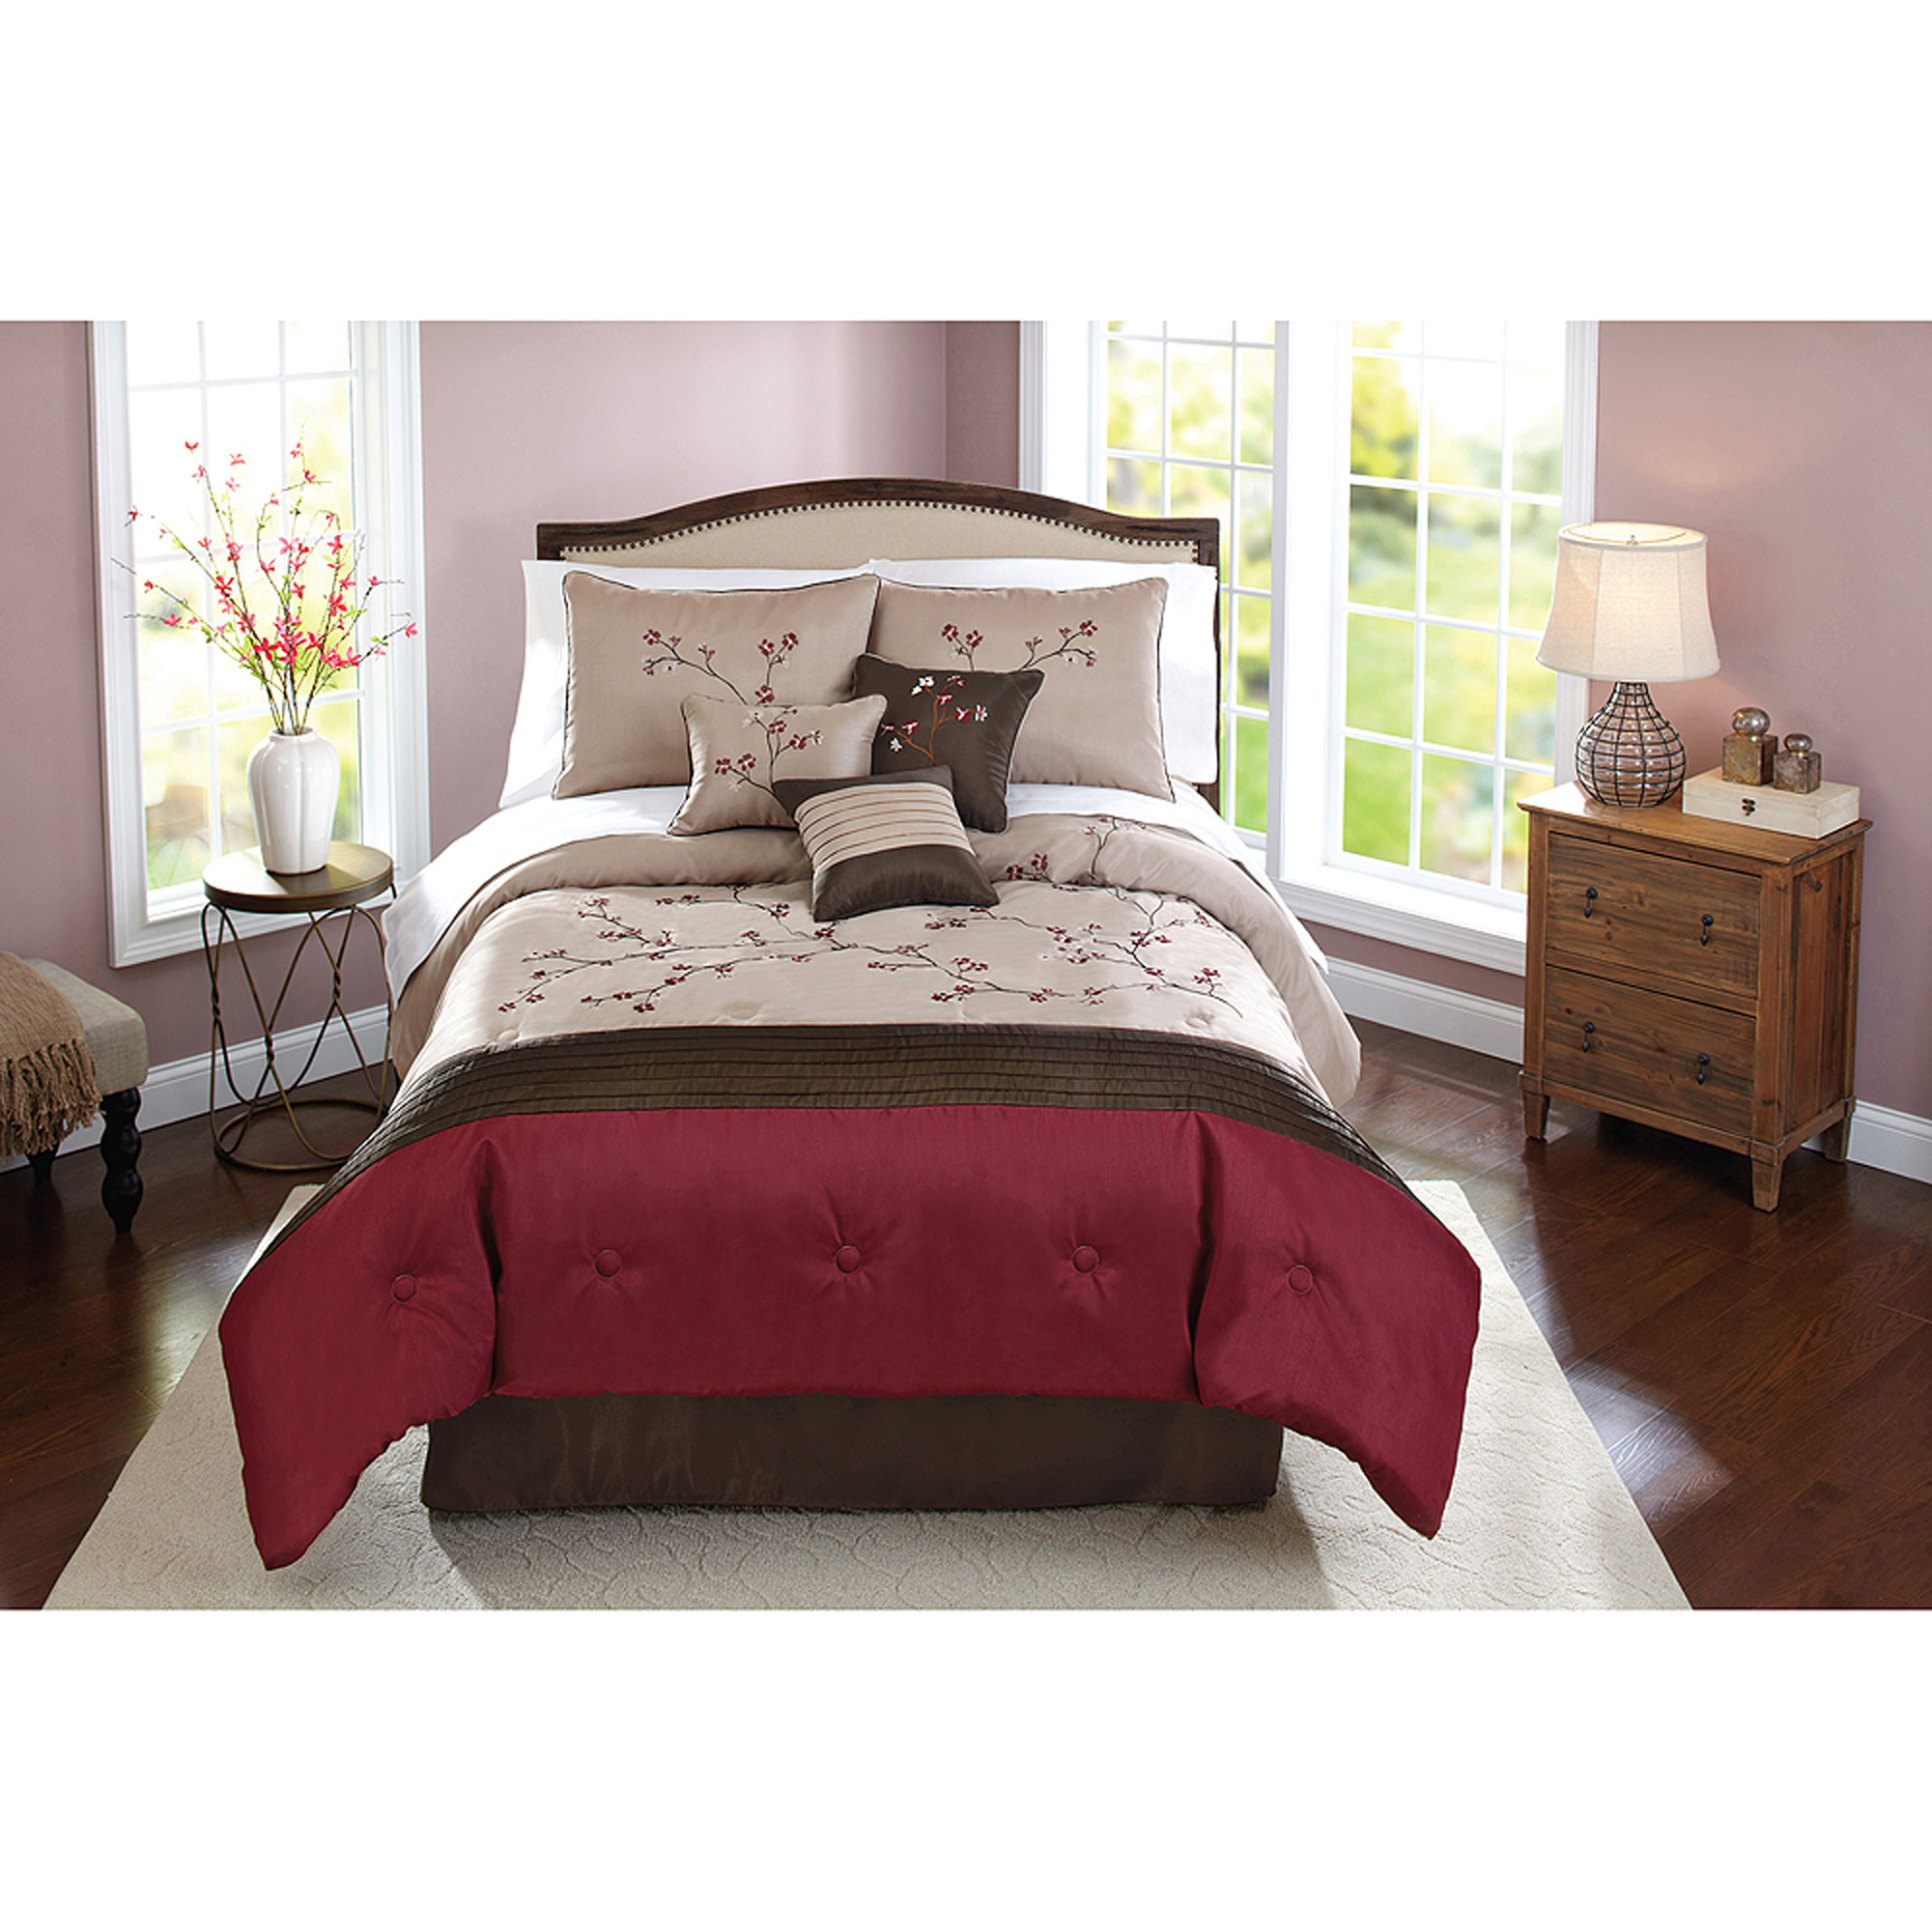 Better Homes and Gardens 7-Piece Therese Comforter Set by Hallmart Collectibles Inc